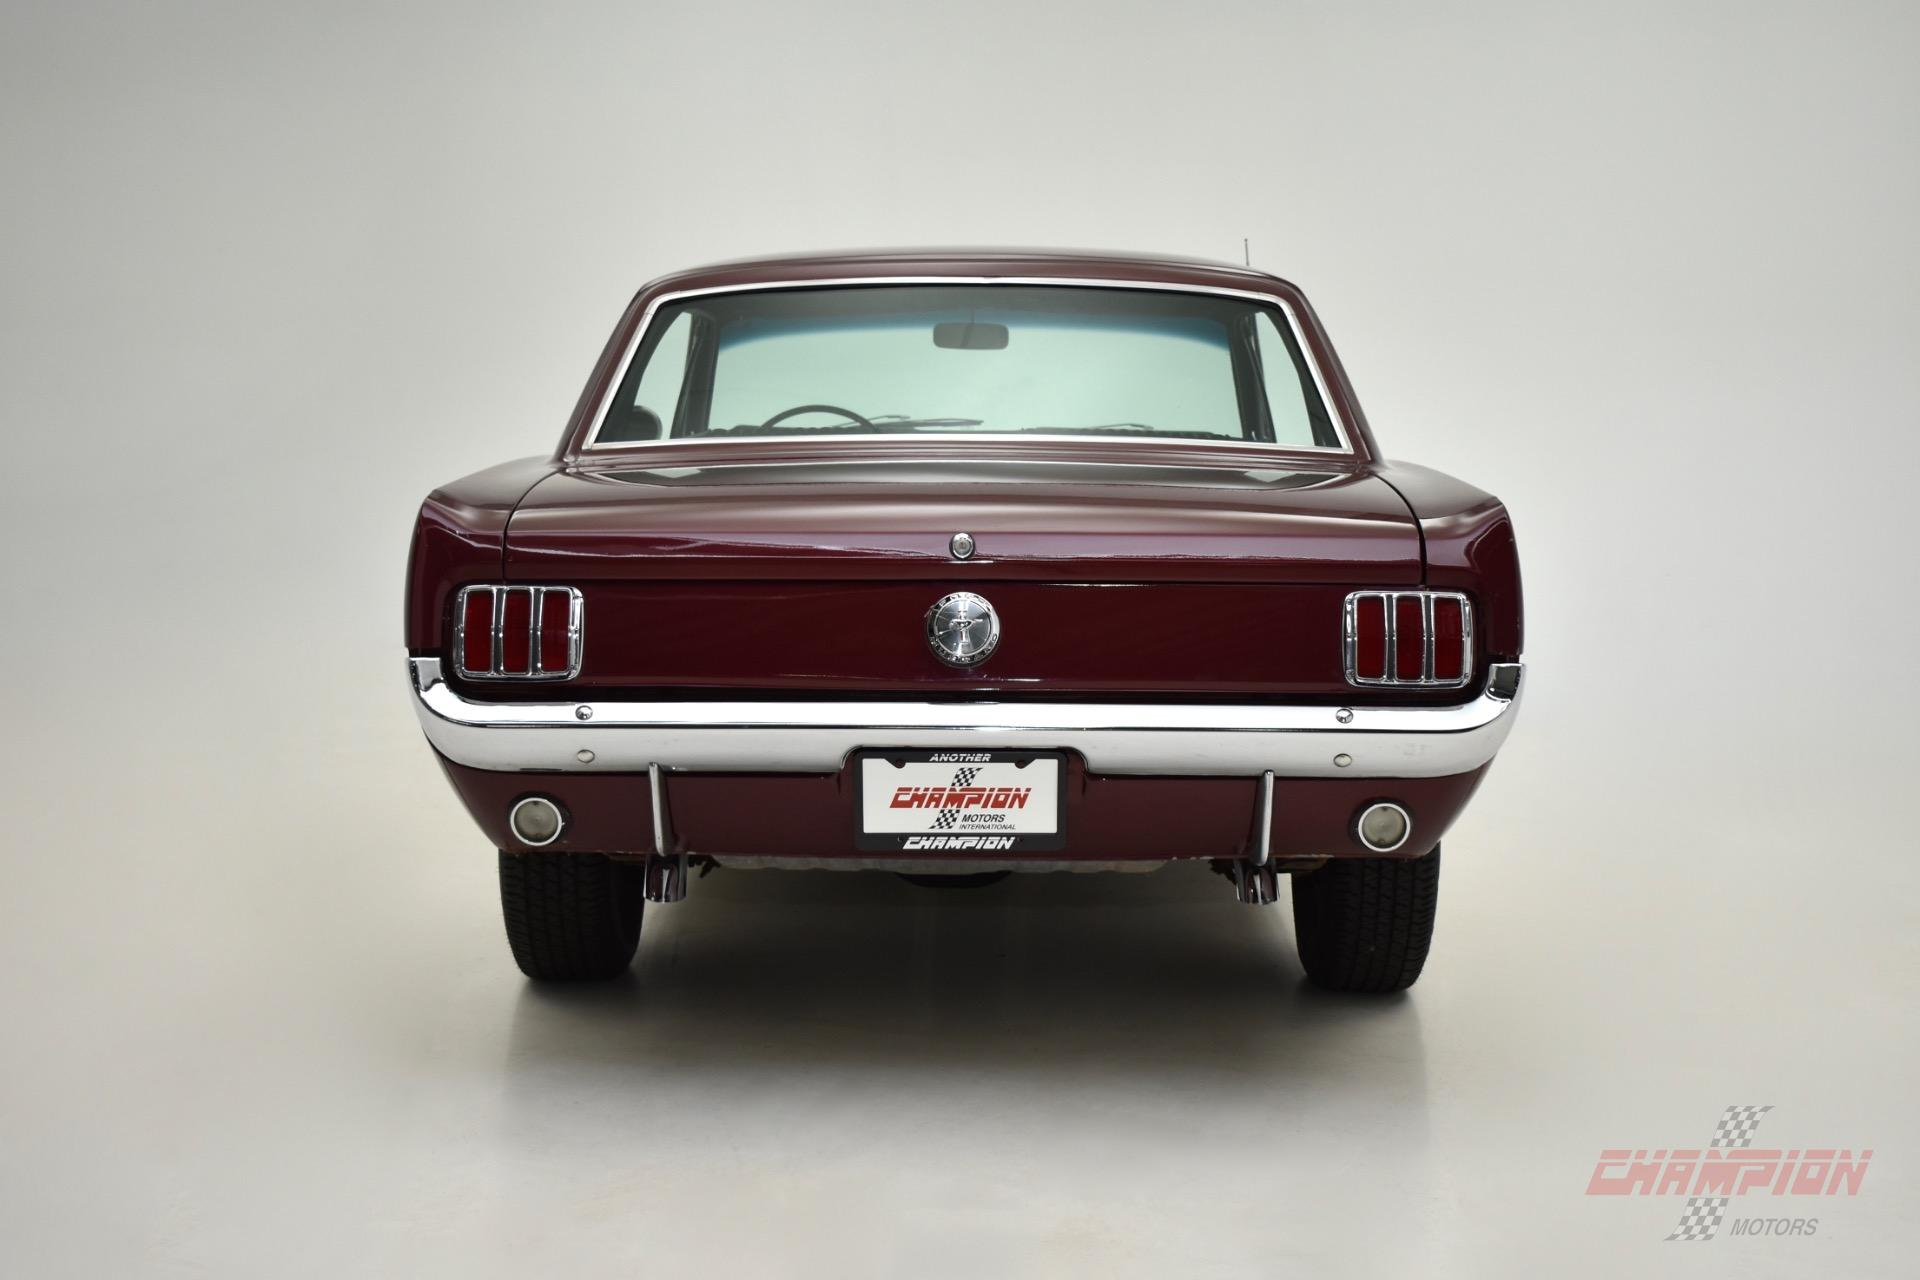 1966 Ford Mustang --: 1966 Ford Mustang  41,522 Miles Burgundy/Maroon Coupe 289 Ci Automatic